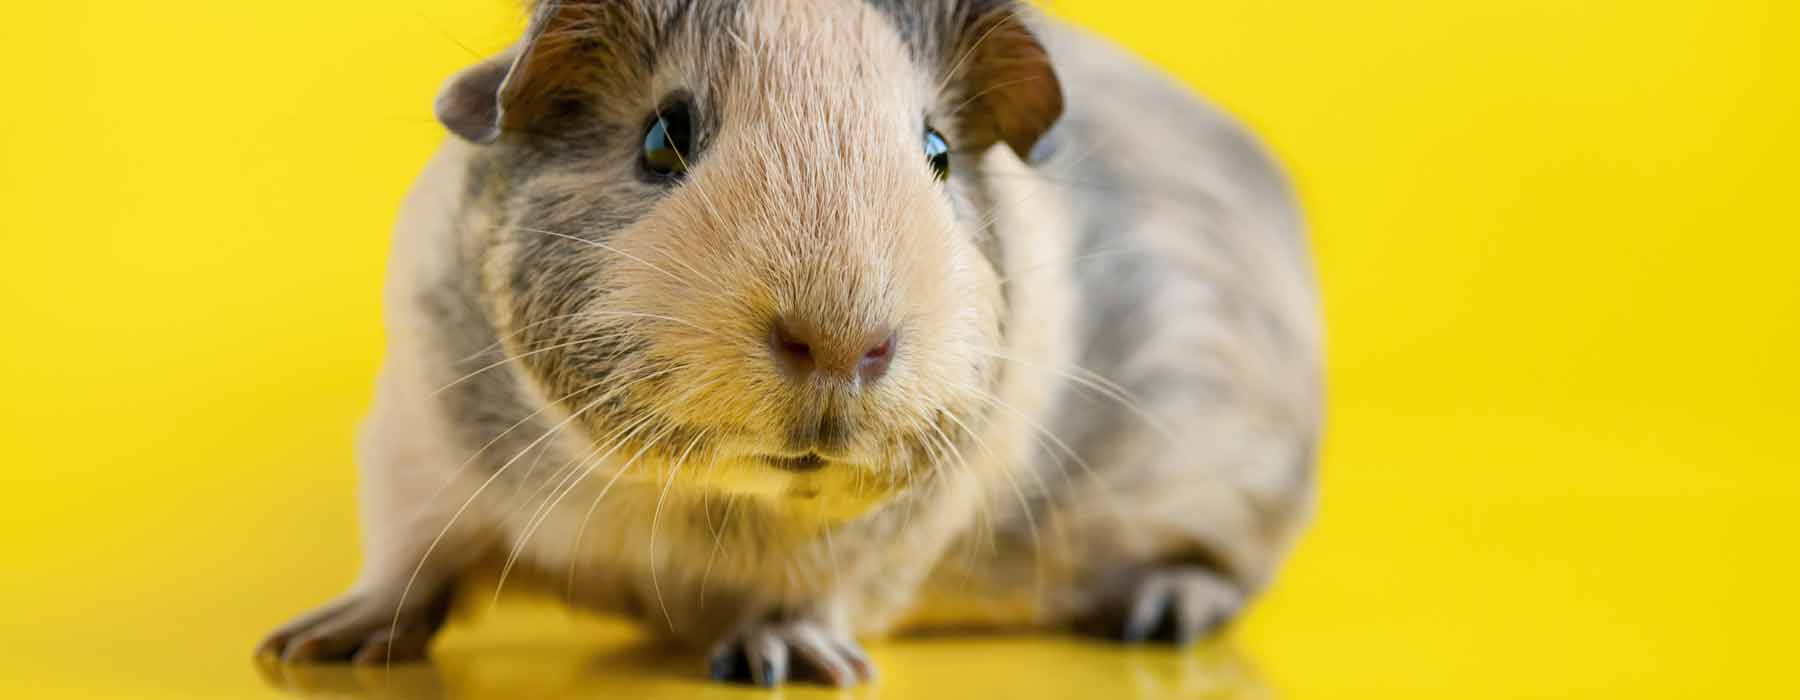 cute short haired guinea pig